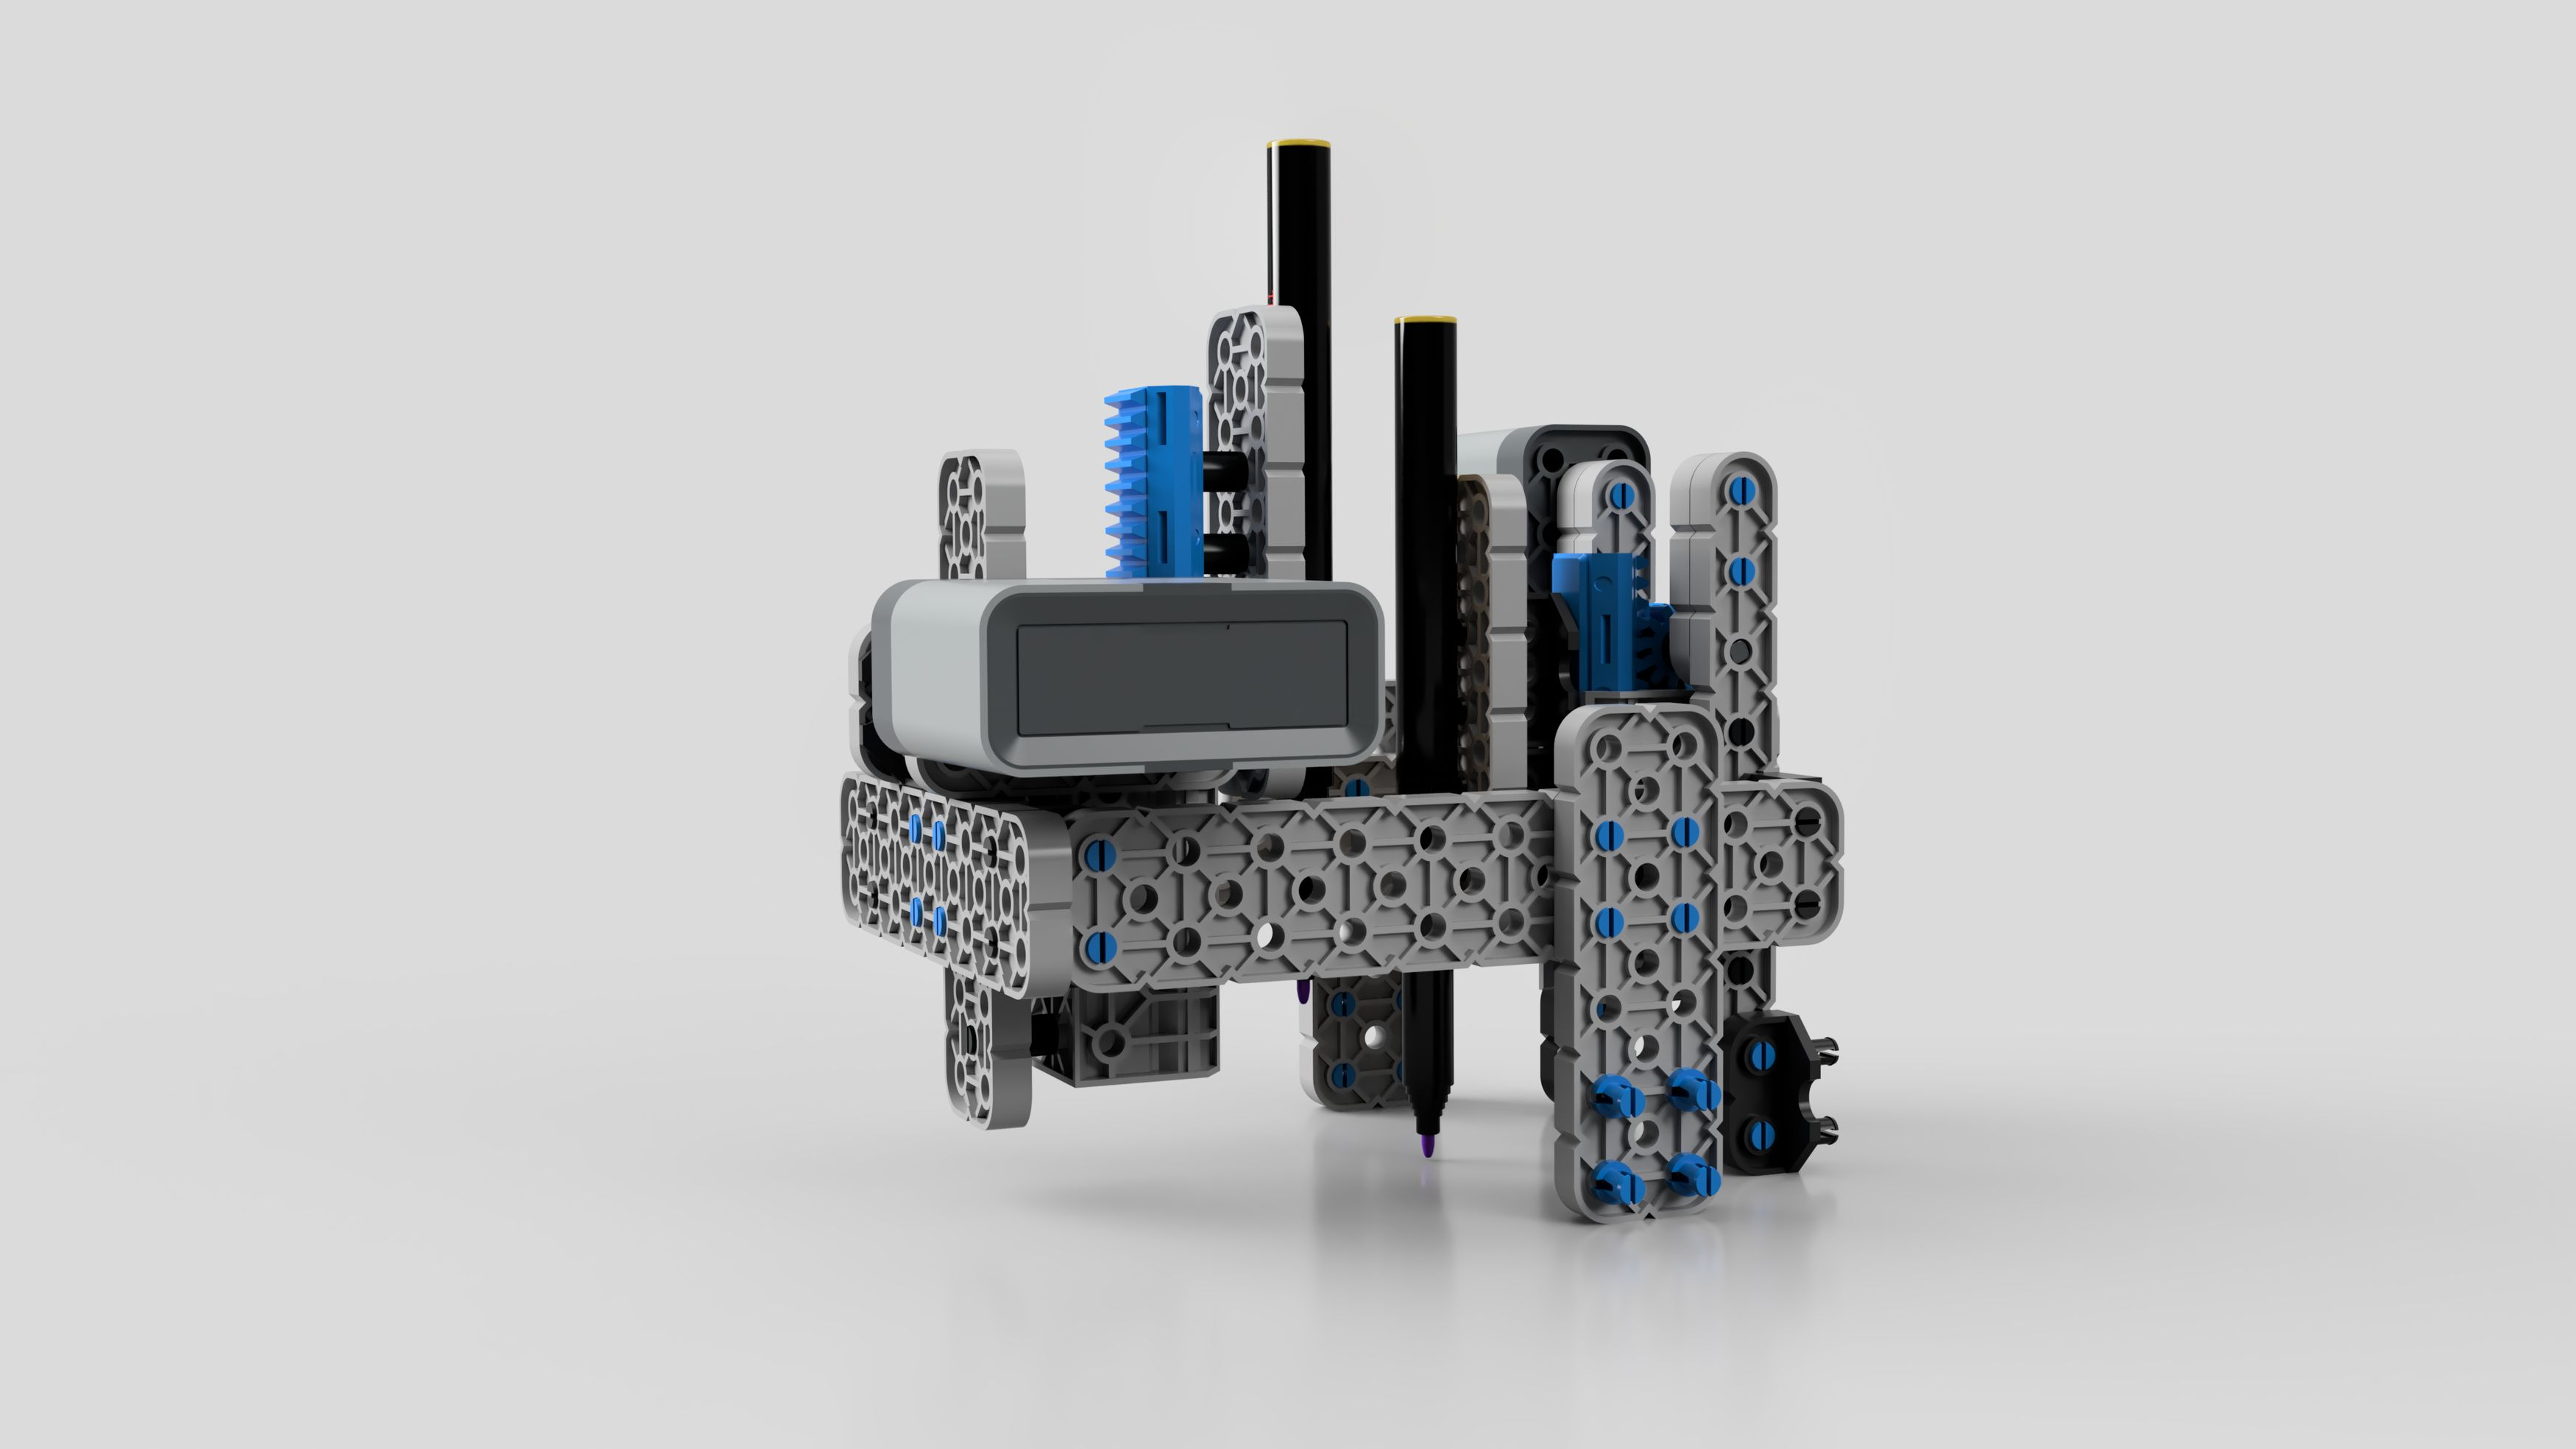 Robotic-pen-vex-iq---vexcode-v2-0-2020-may-24-04-42-11pm-000-customizedview6400973978-png-3500-3500